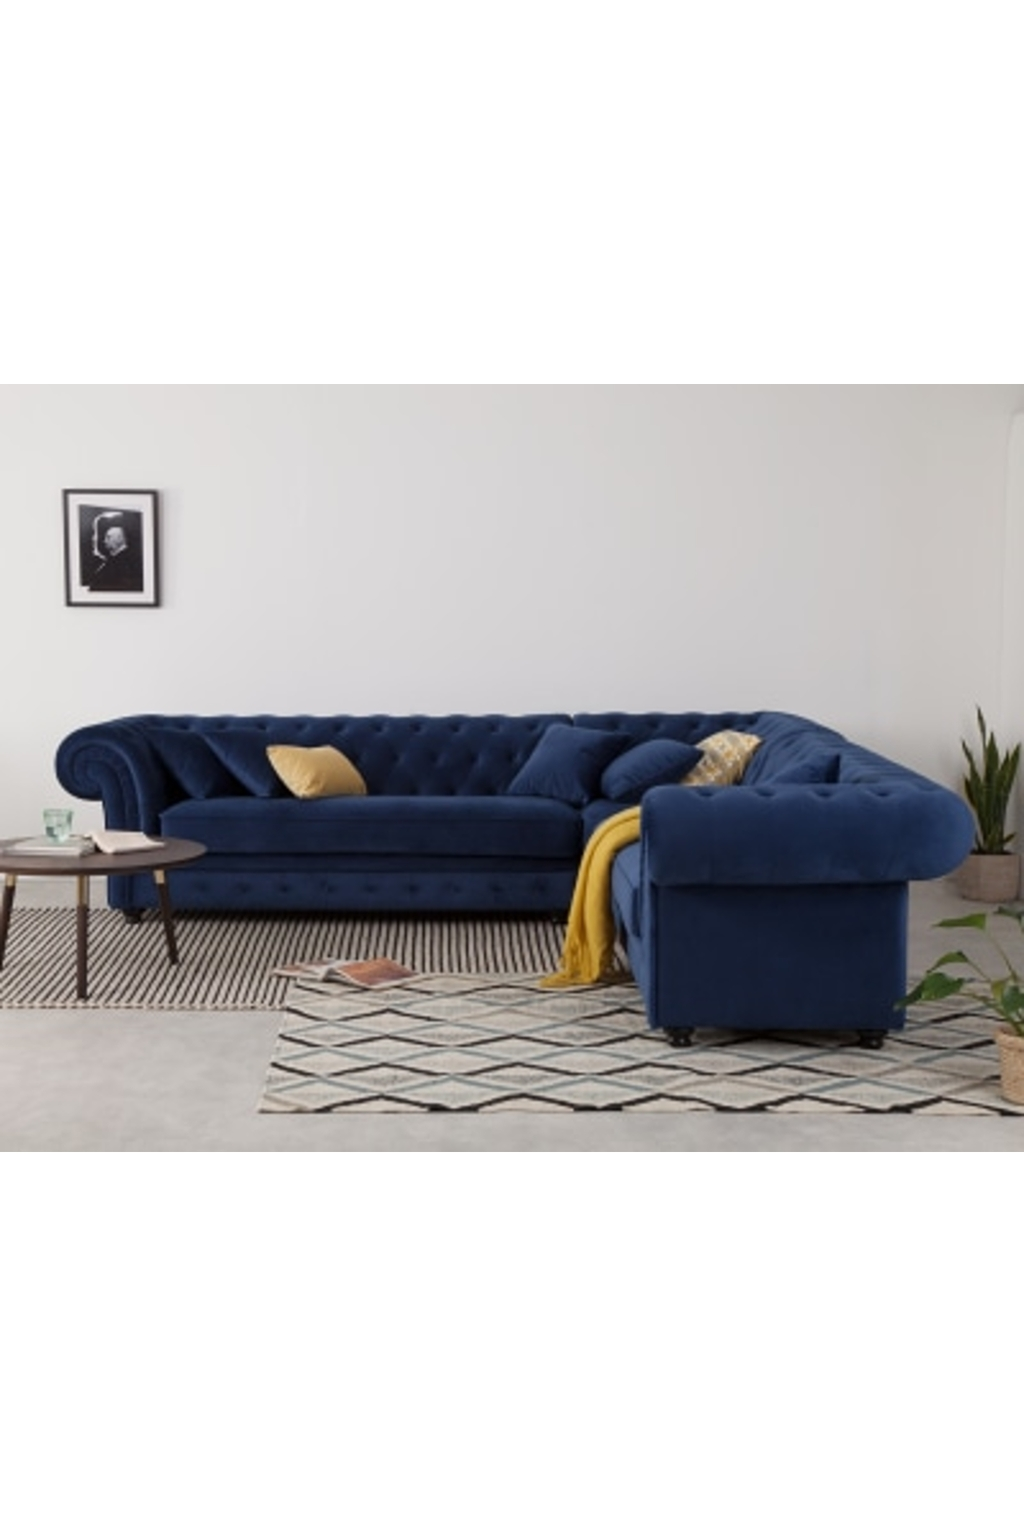 Unusual Corner Sofa Ideas That You Can Apply In The Living Room 33